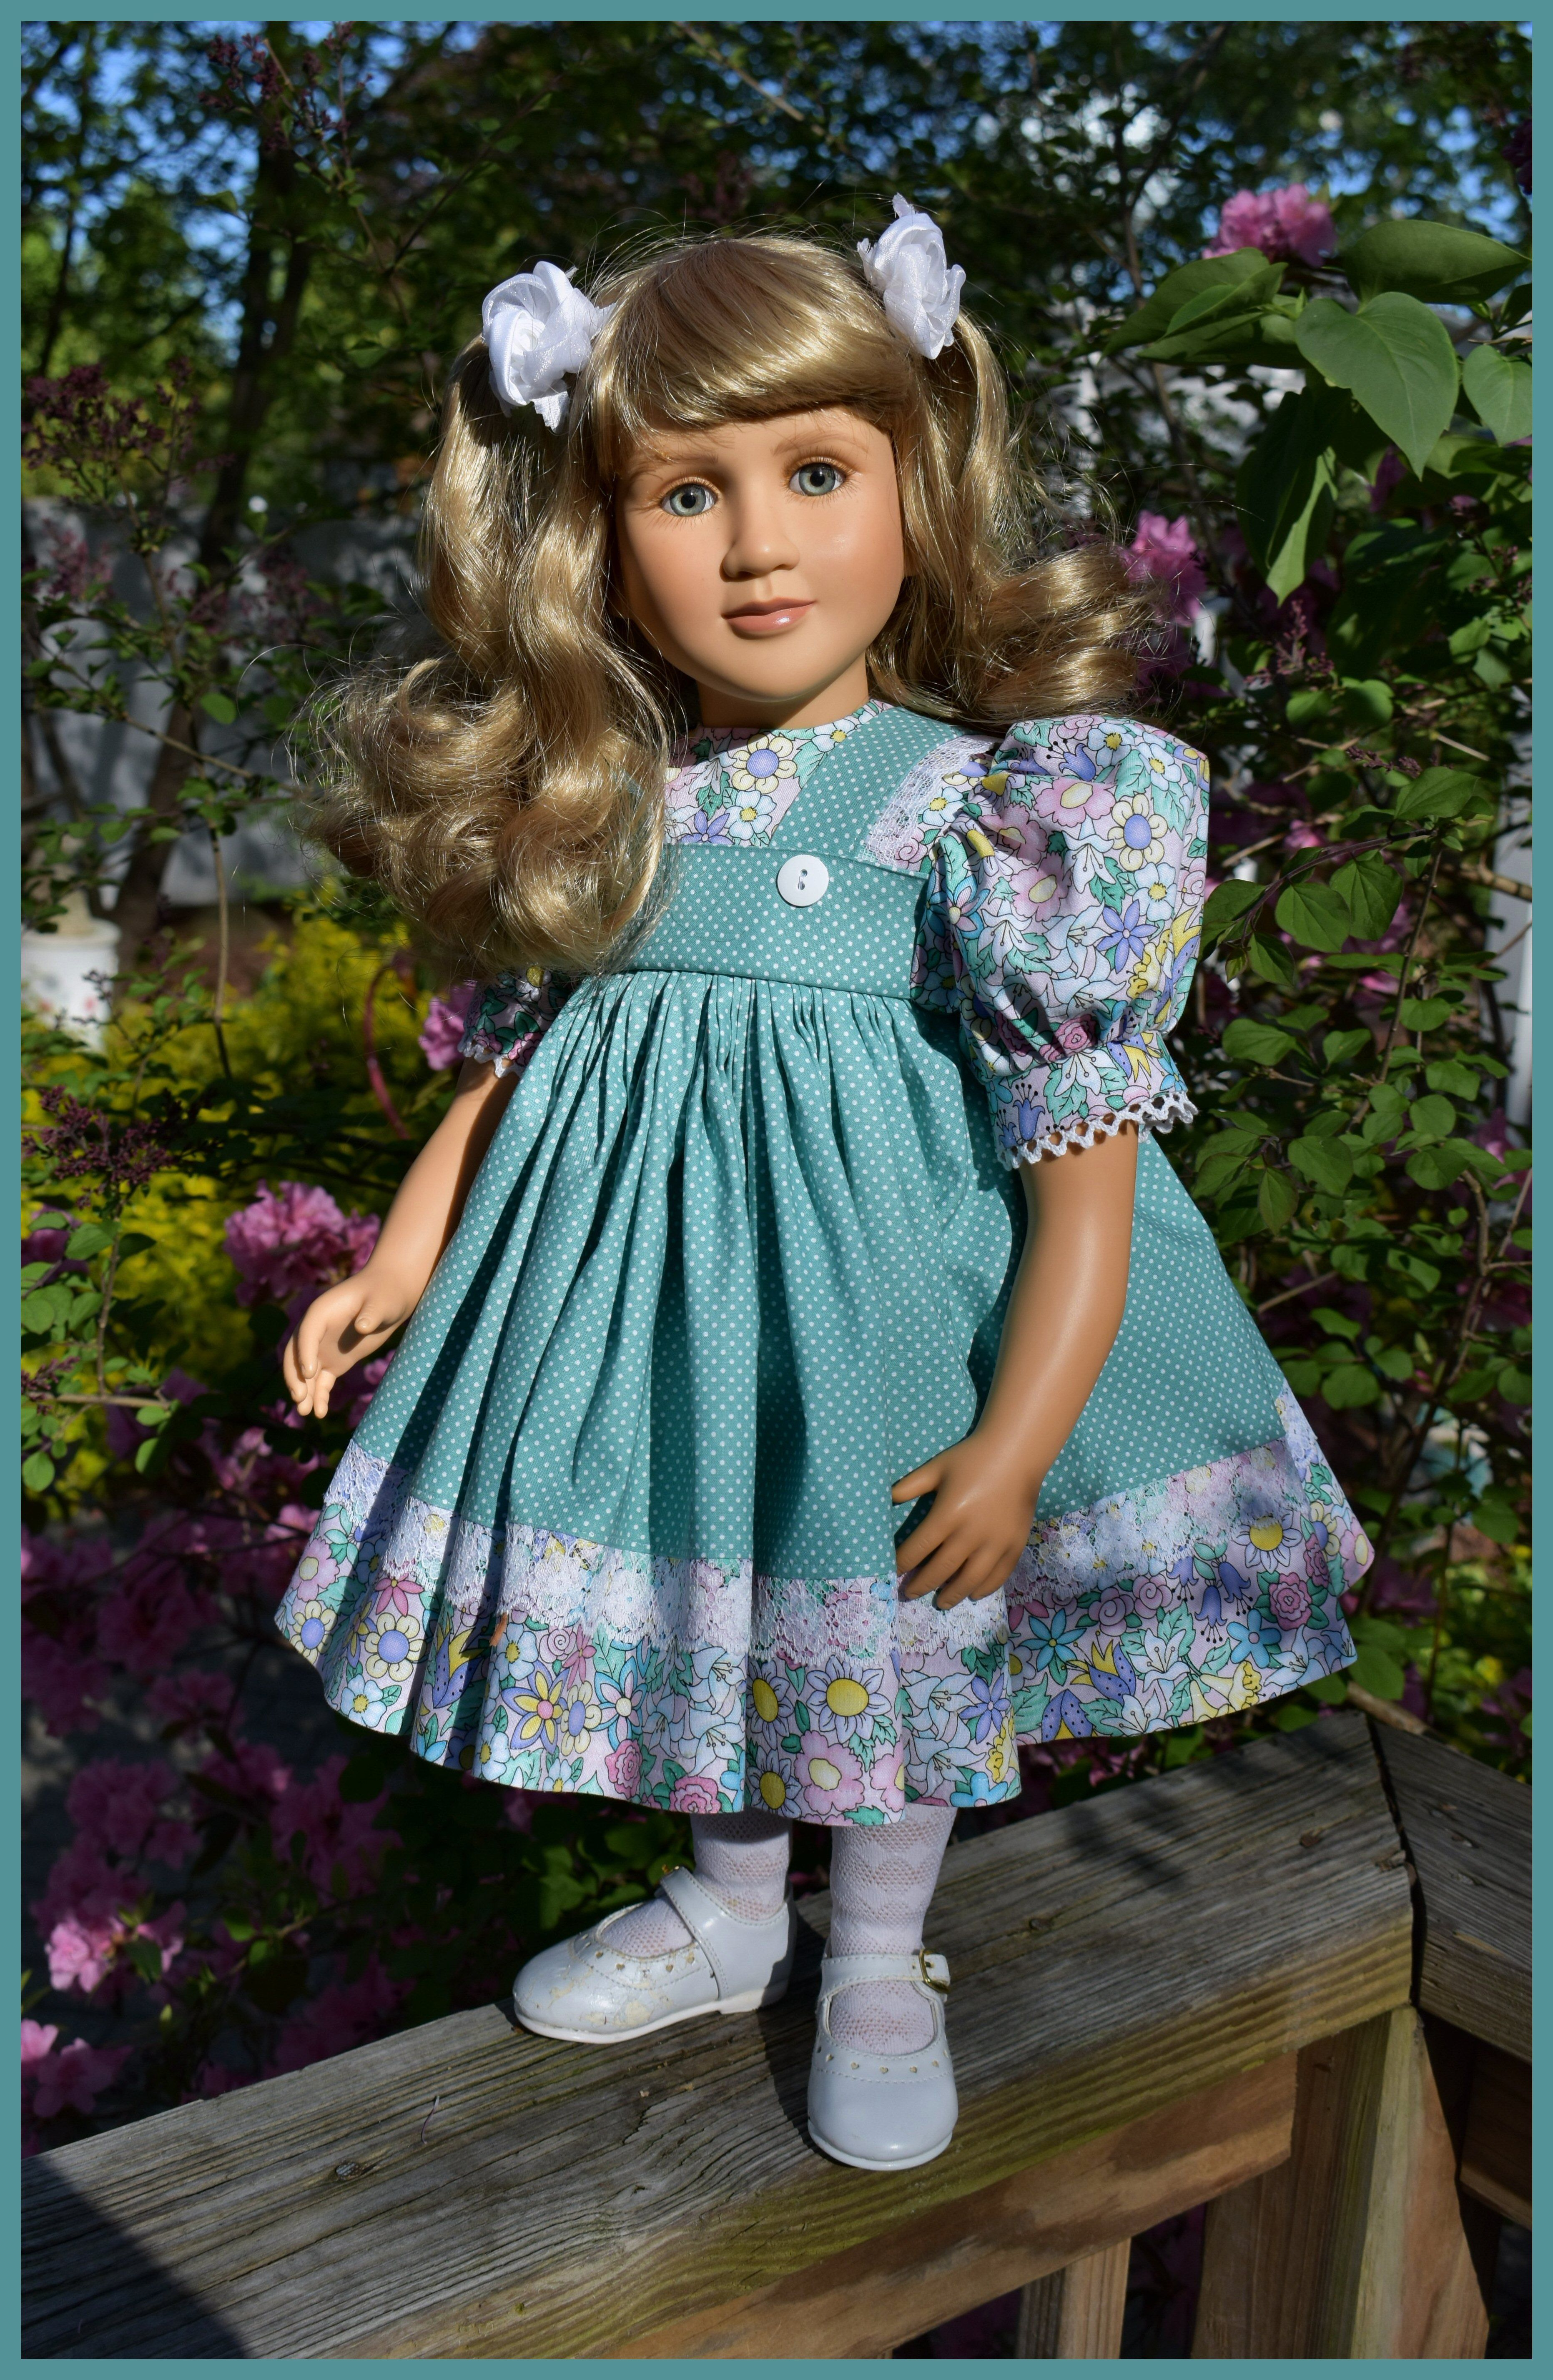 Dress by sewbeitsdollwear on etsy with images dresses